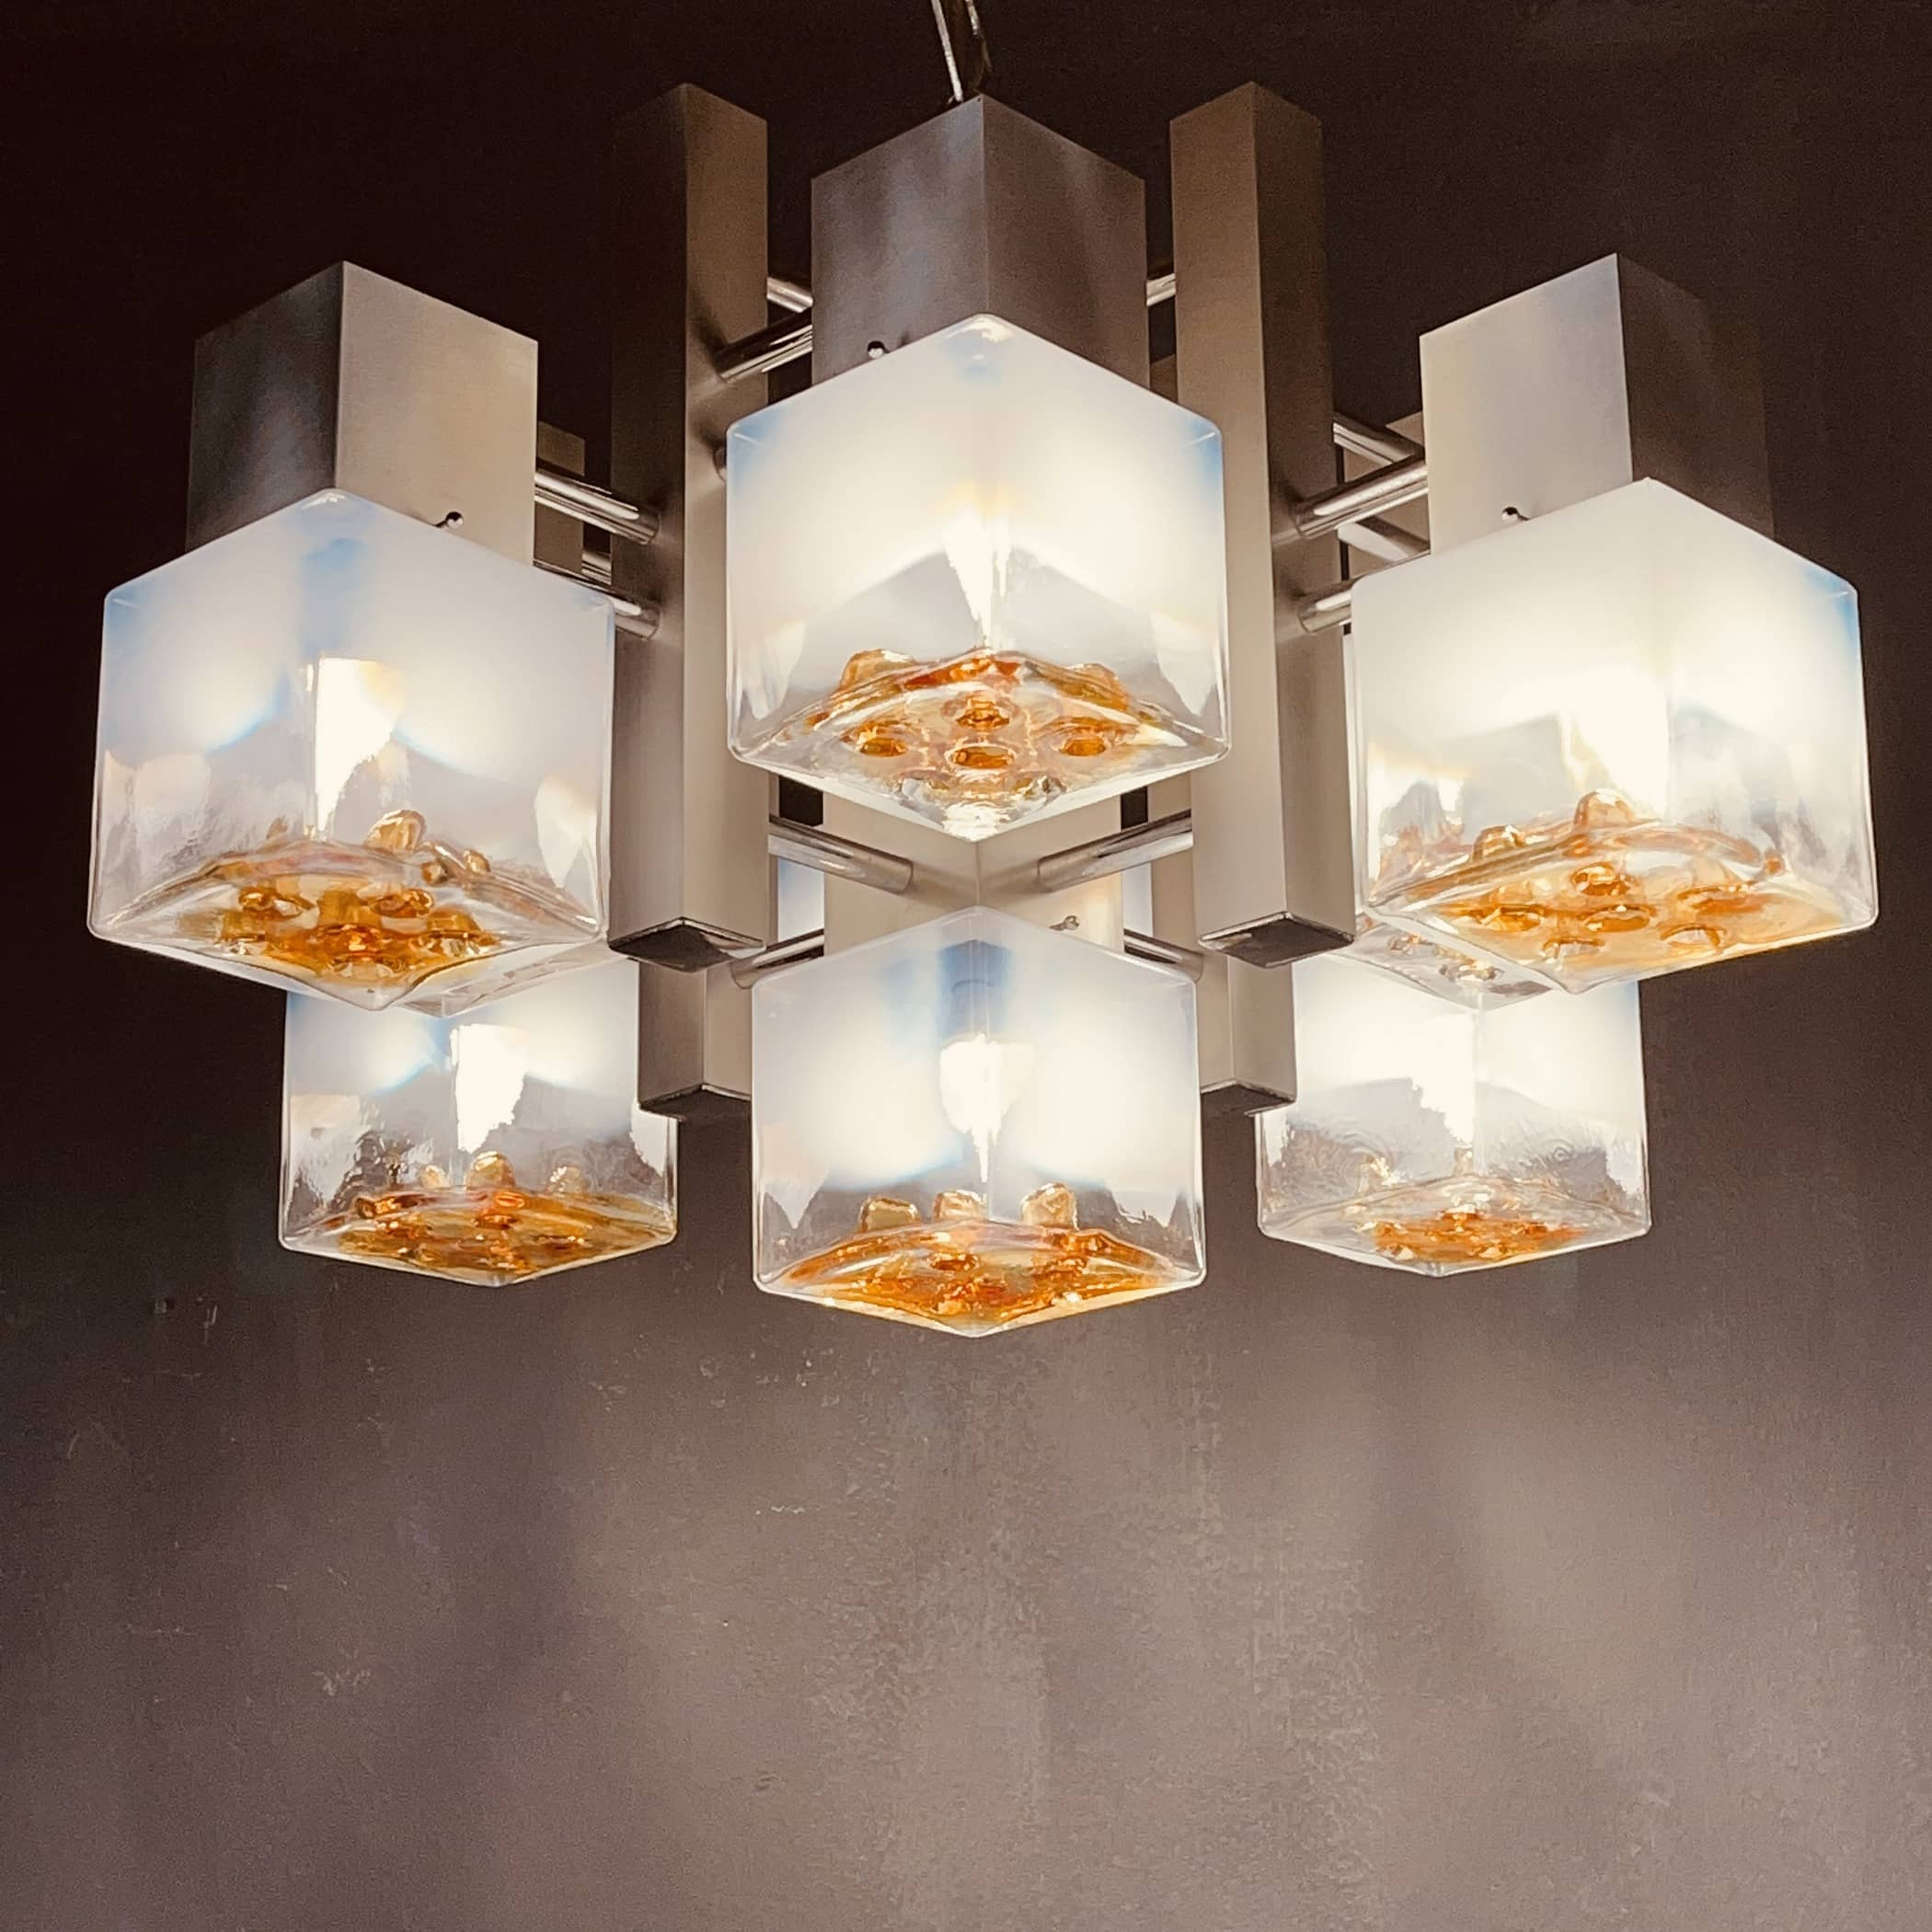 Cubic chandelier murano glass and chrome metal Mazzega Italy 1960s style by Gaetano Sciolari